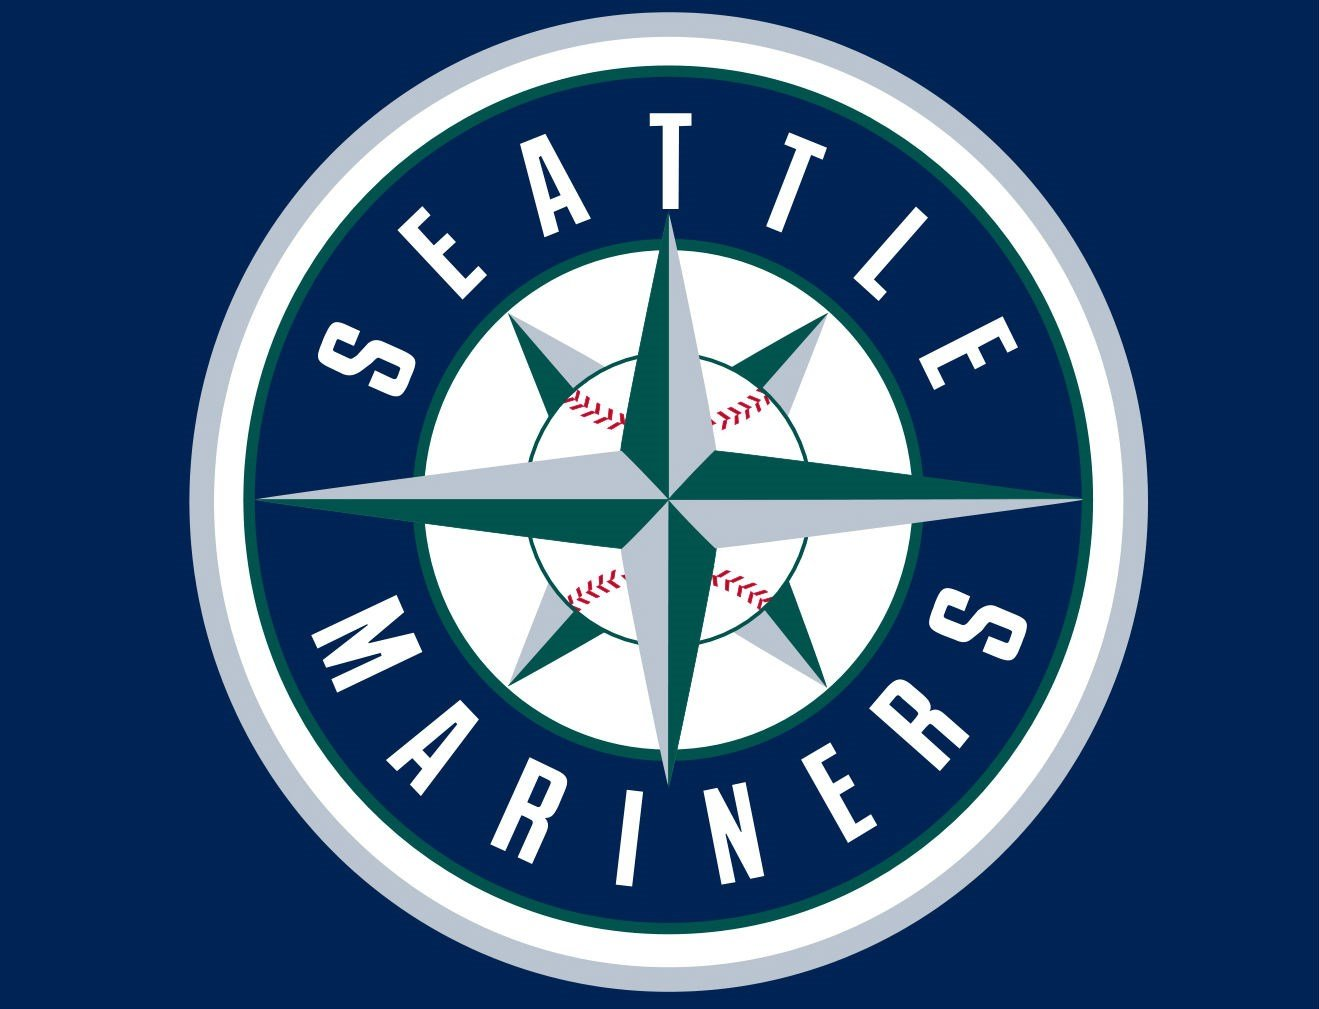 Mariners Currently Sit 2.5 Games Back From Wild Card